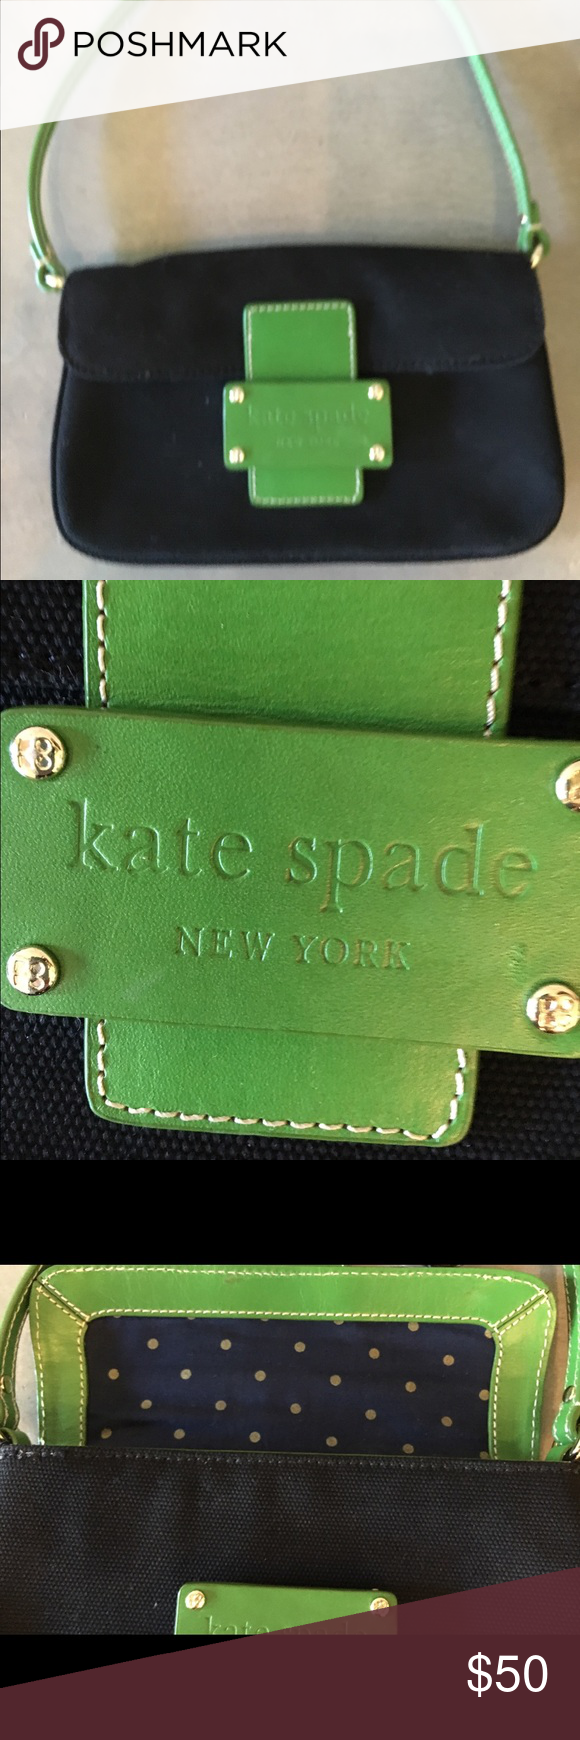 Kate Spade Small shoulder bag Cute Kate Spade small shoulder bag. Black canvas with kelly green accents. Navy polka dot lining. kate spade Bags Shoulder Bags